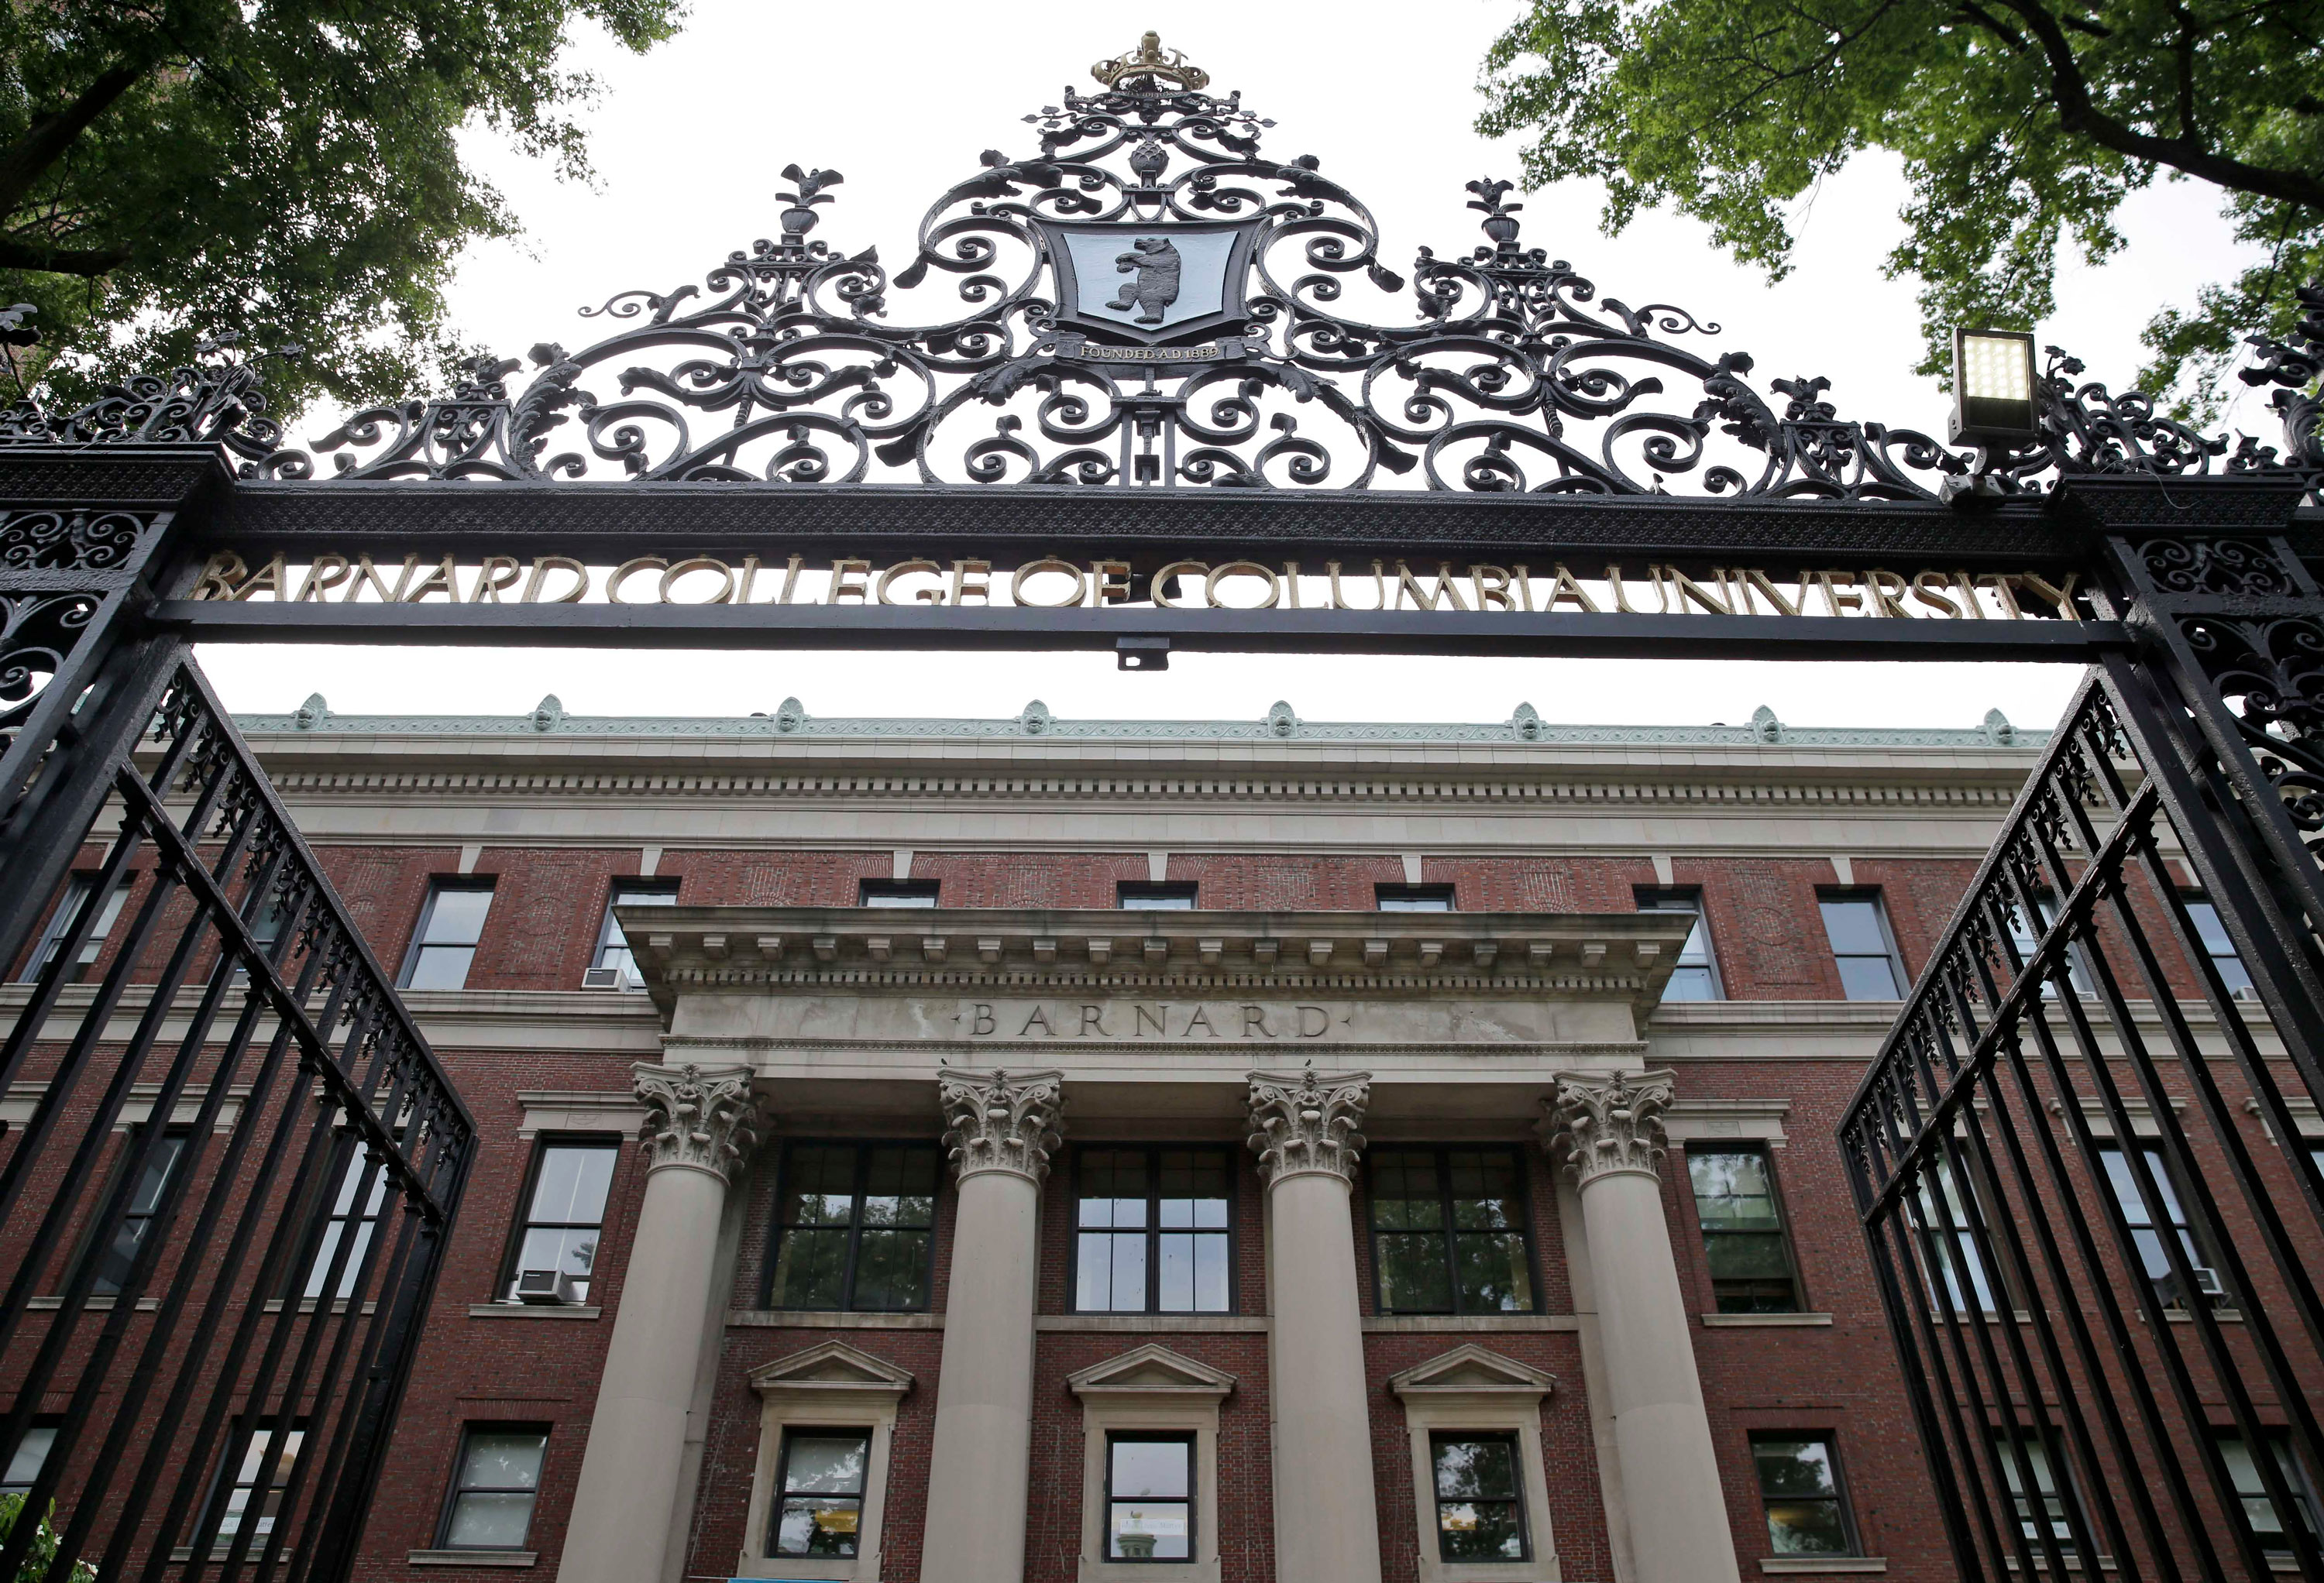 Investigators believe Barnard student was fatally stabbed